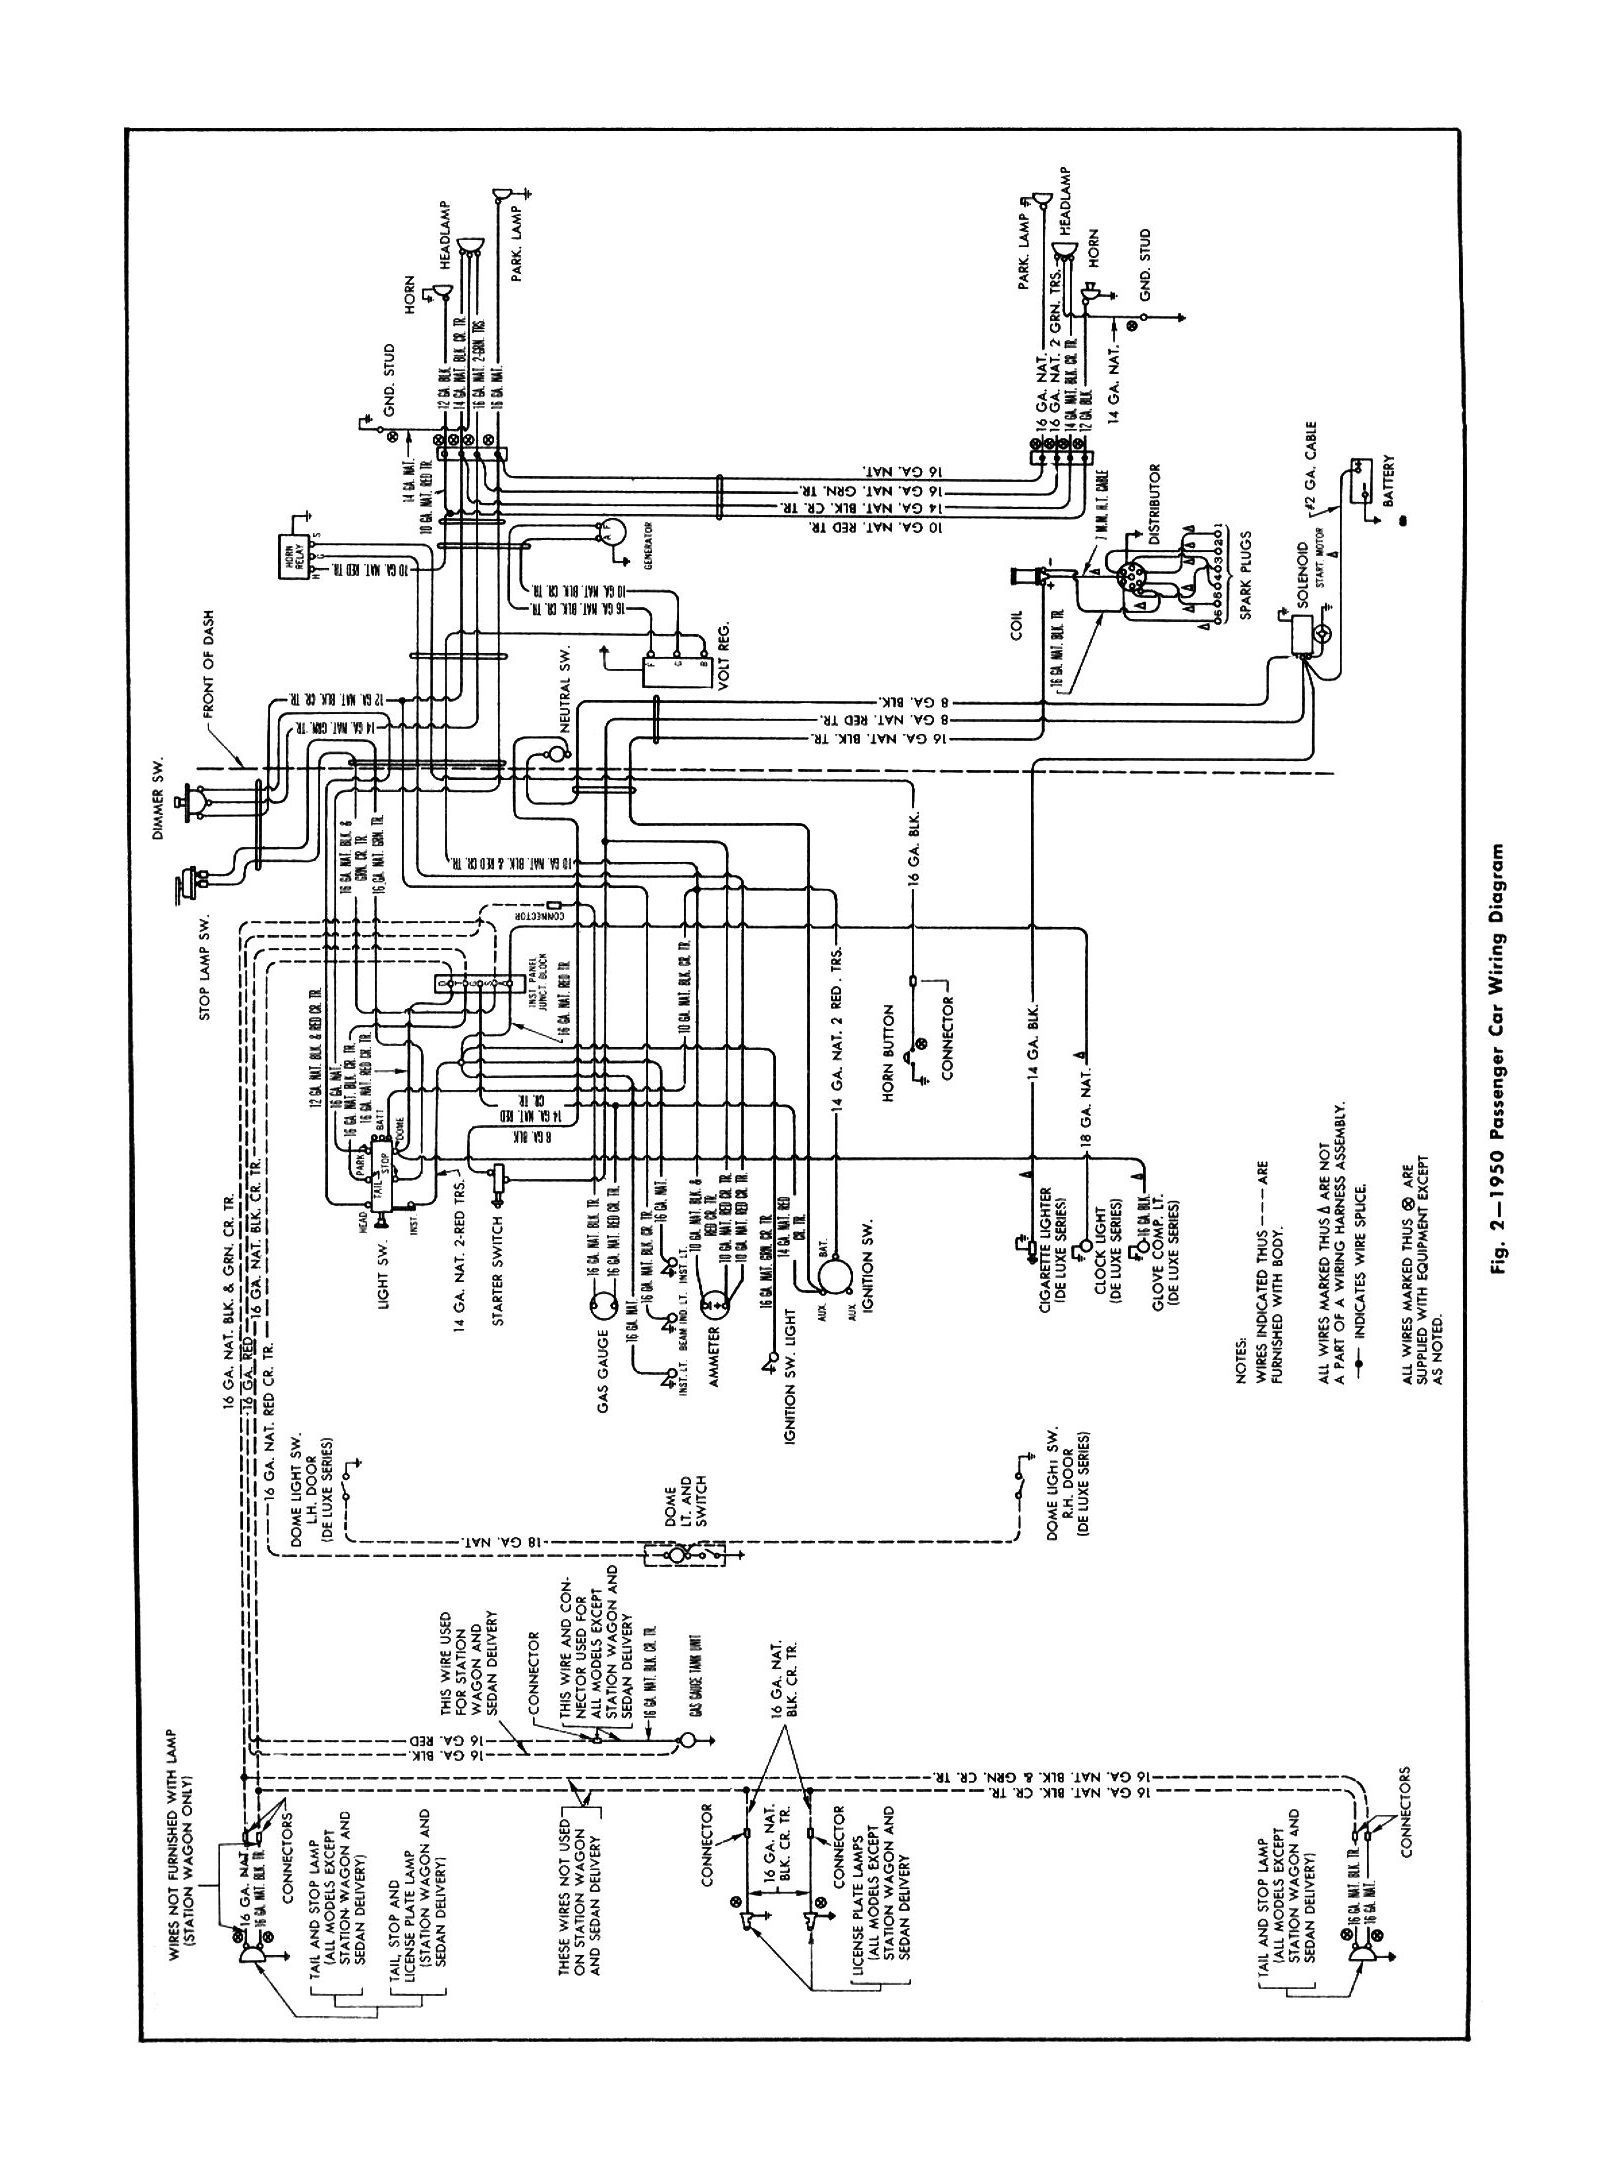 4 6 Ford Engine Diagram 2 My Wiring 0 Diagrams For Refrence F250 New Wire 1965 T Bird Free